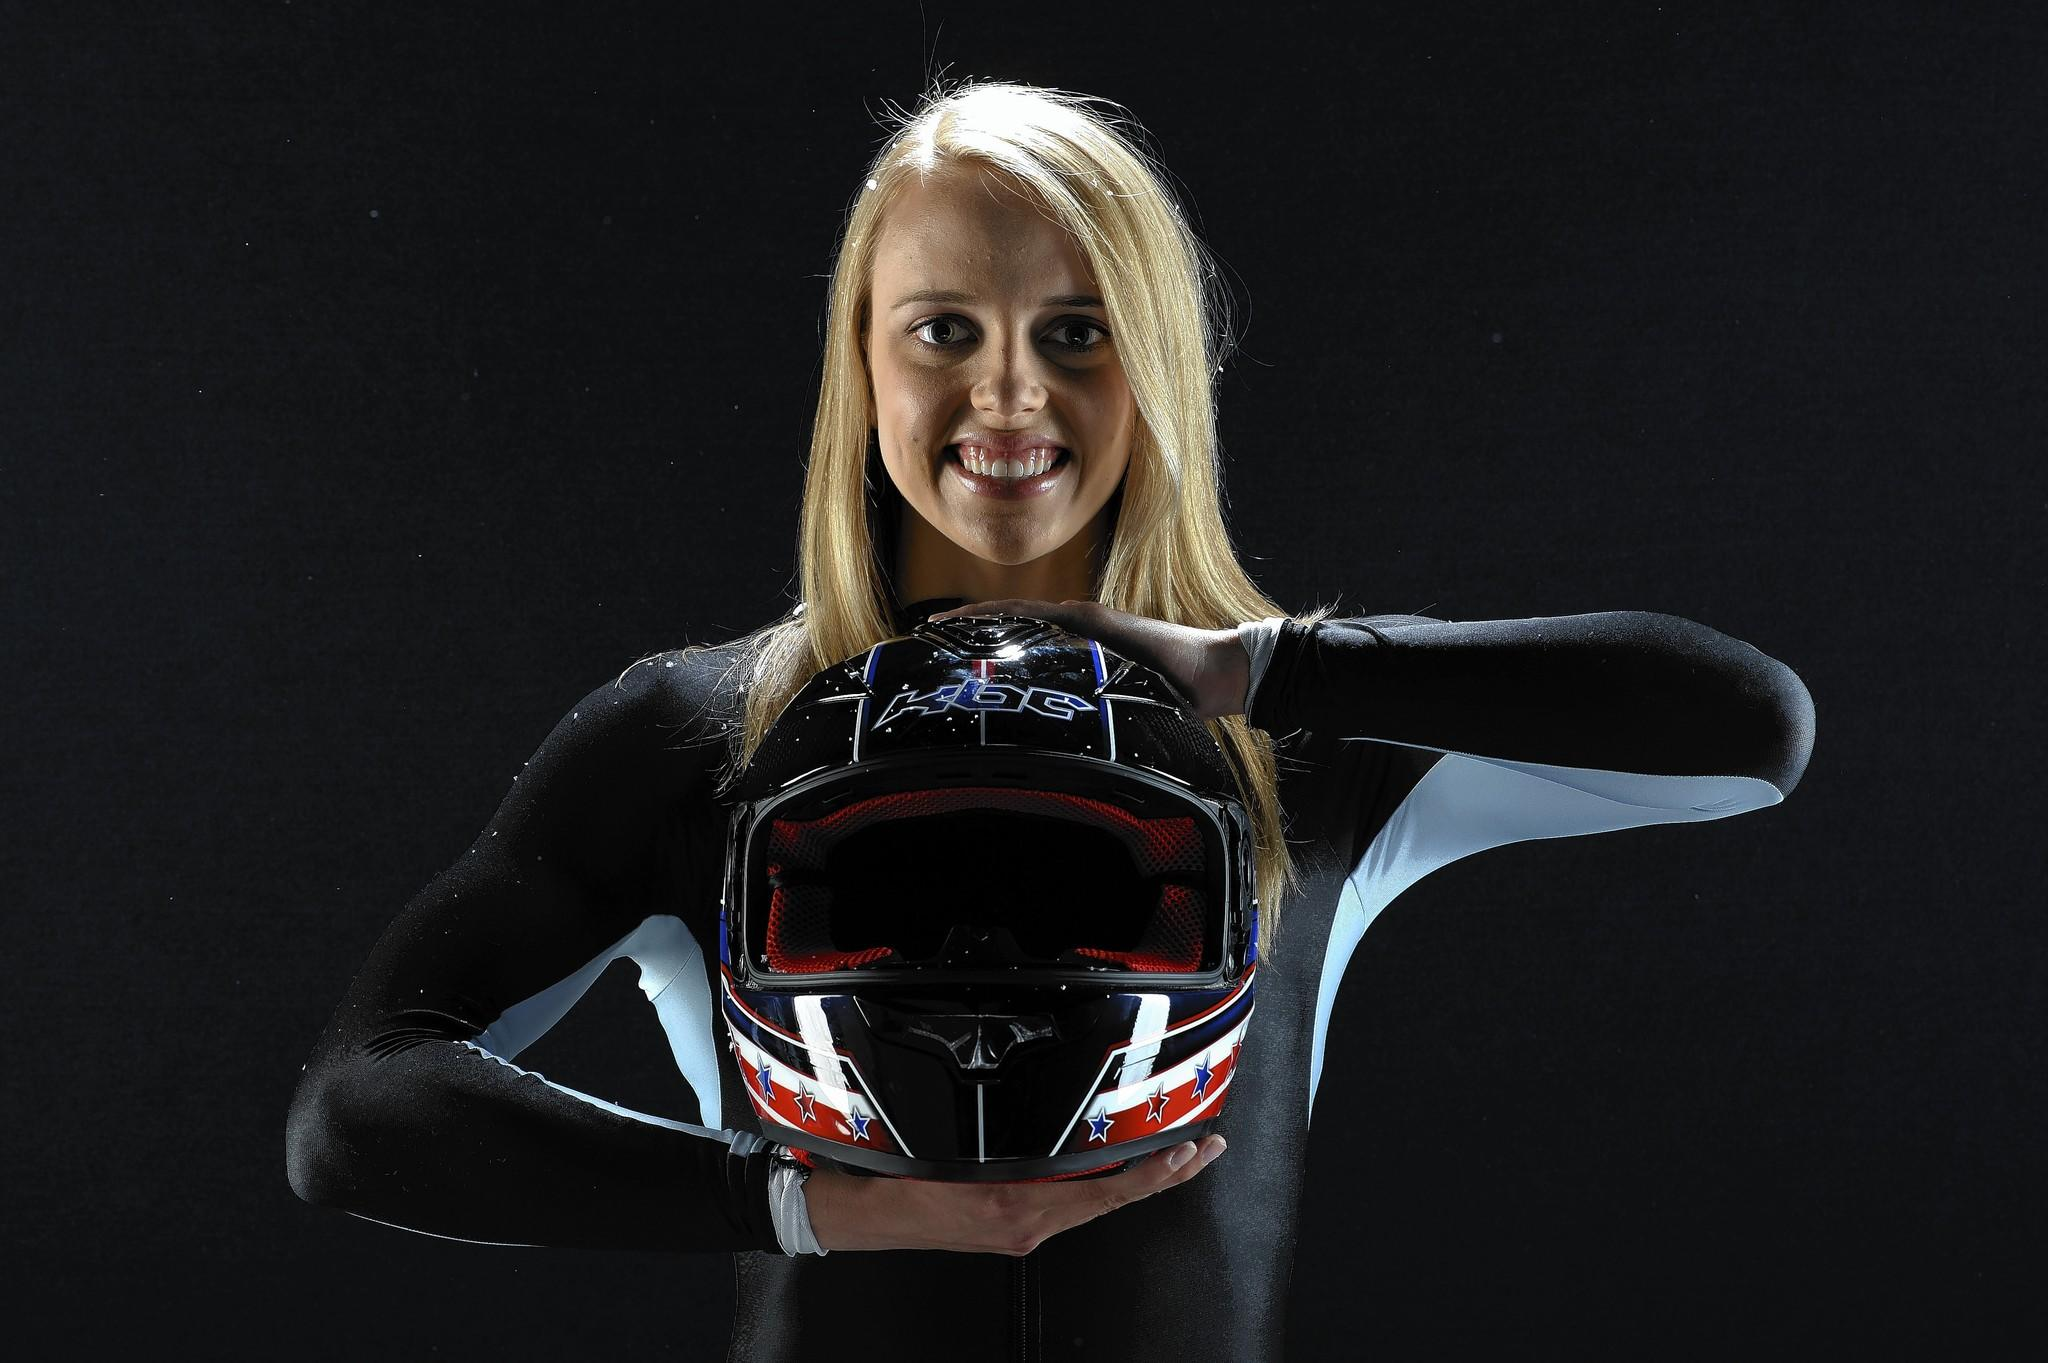 Bobsledder Katie Eberling poses for a portrait during the USOC Portrait Shoot.